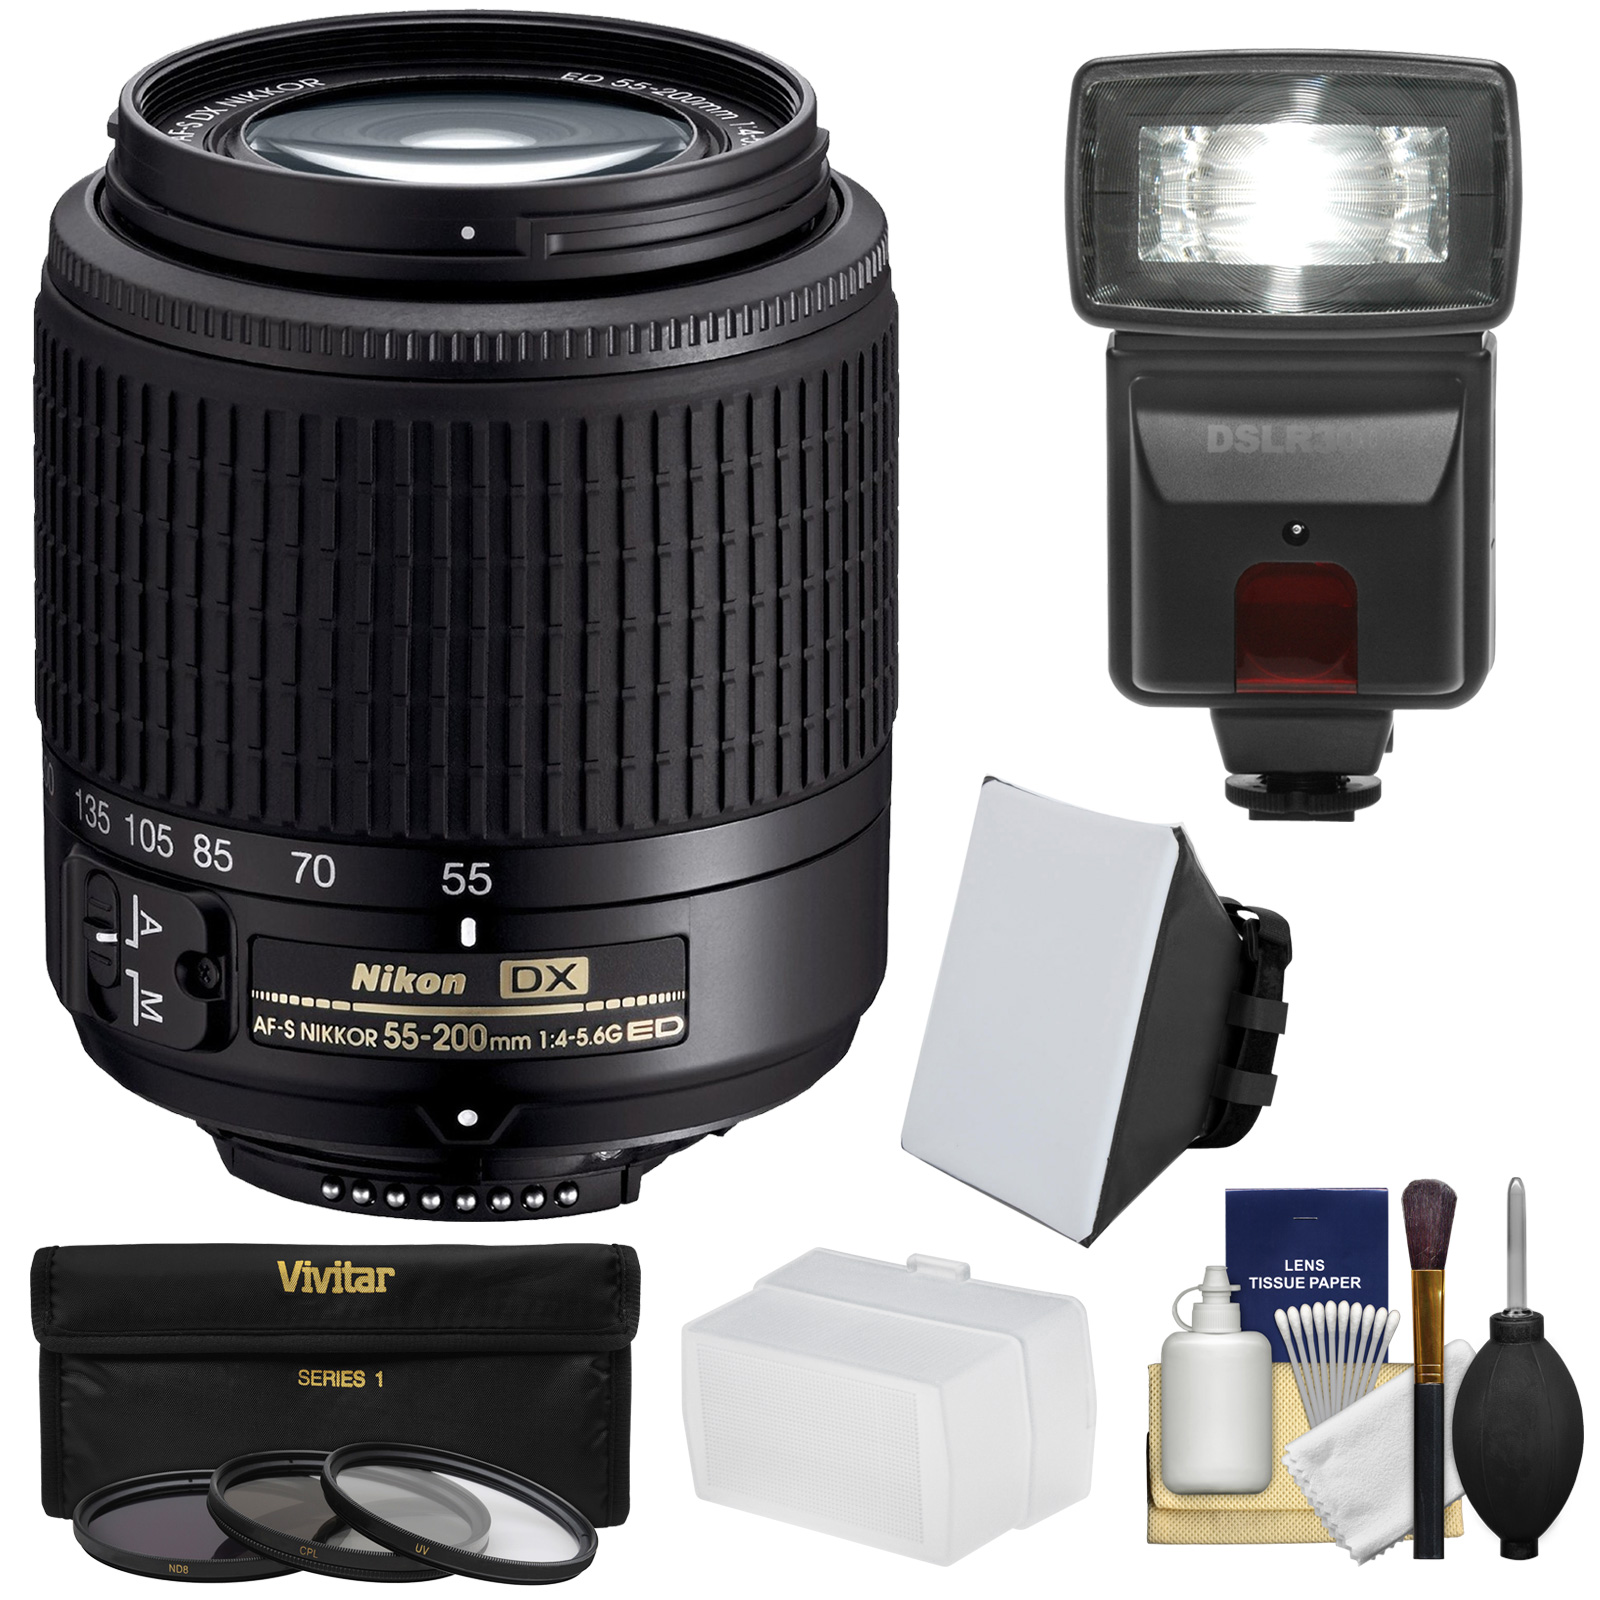 Nikon 55-200mm f/4-5.6G DX AF-S ED Zoom-Nikkor Lens with 3 UV/CPL/ND8 Filters + Flash + Softbox + Diffuser + Kit